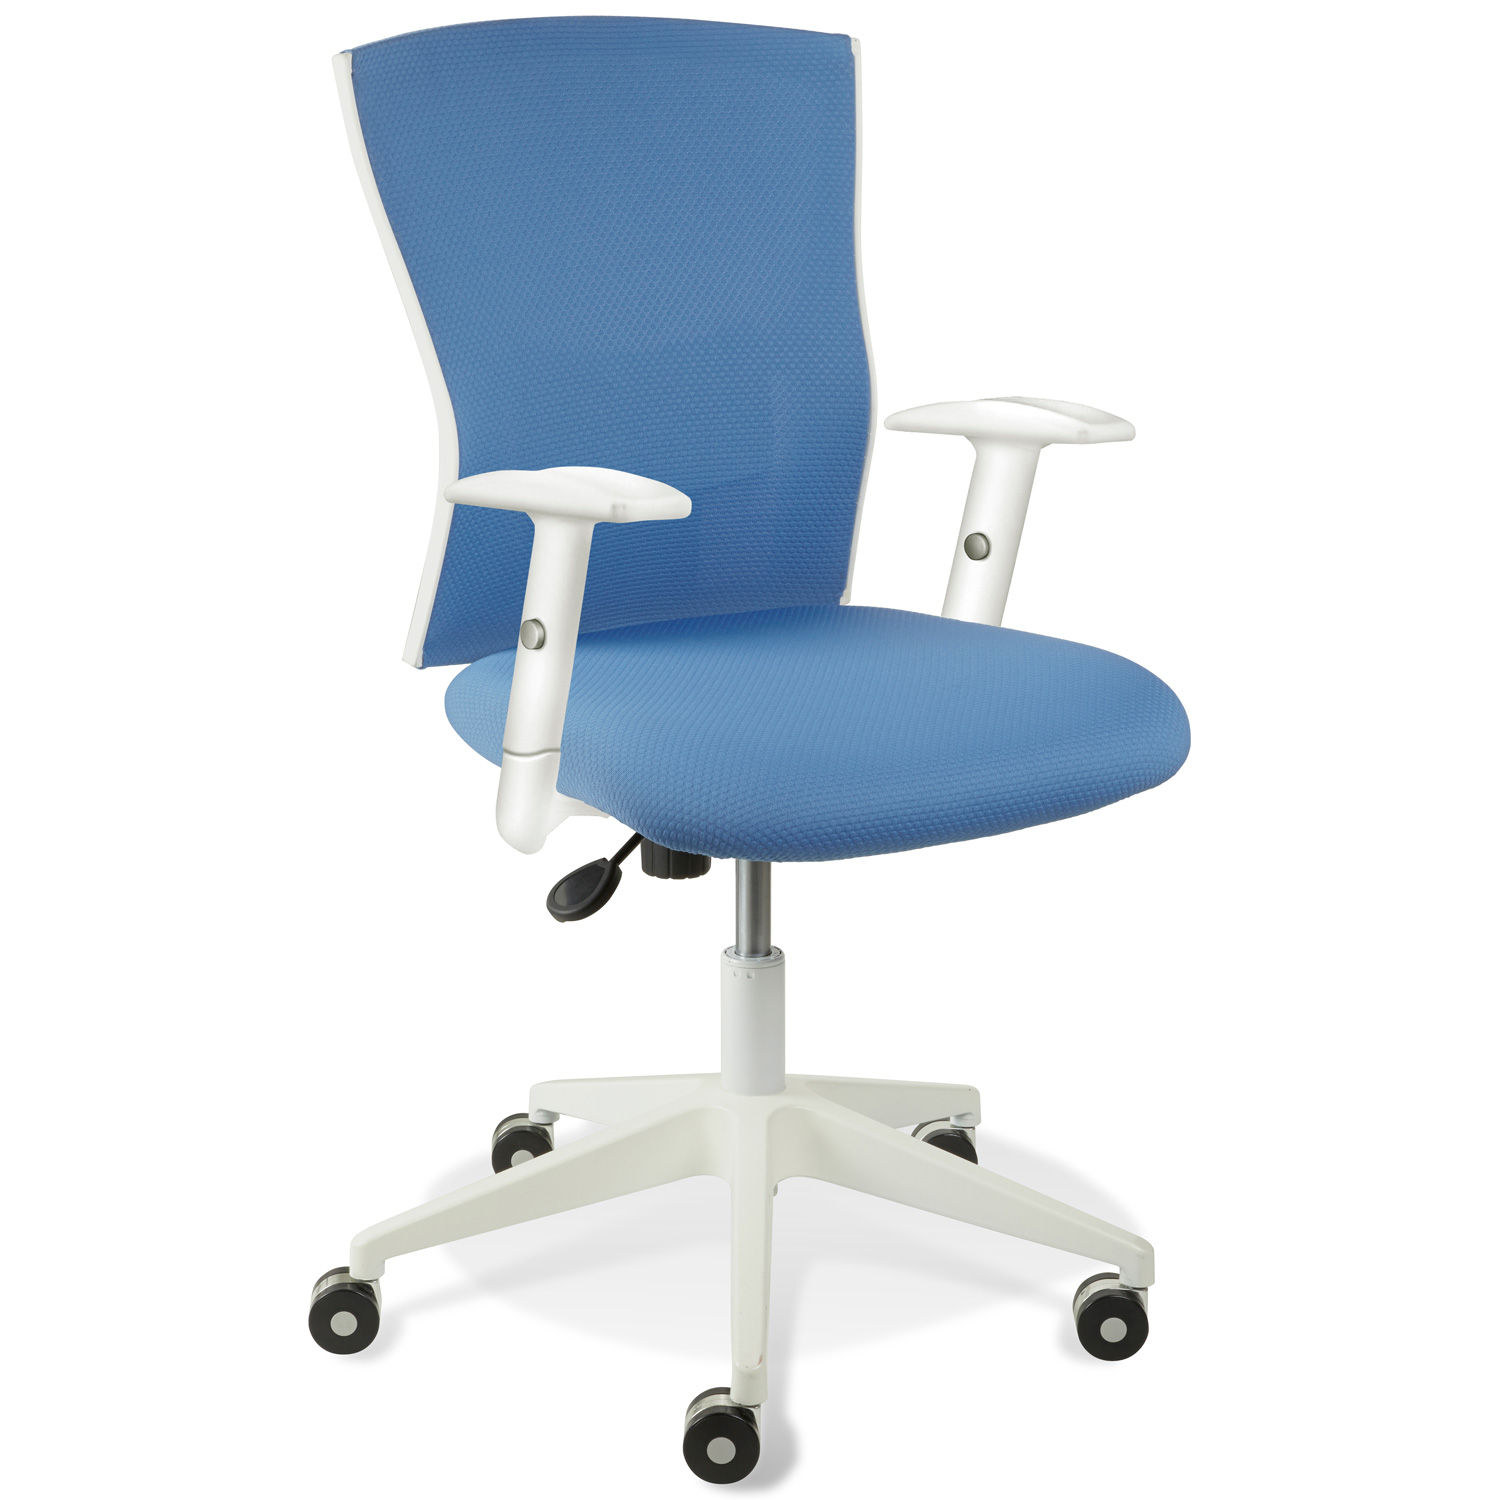 Sanne Office Chair - Tilt, Adjustable Arms, White & Blue - UNIQ-X5368-5364